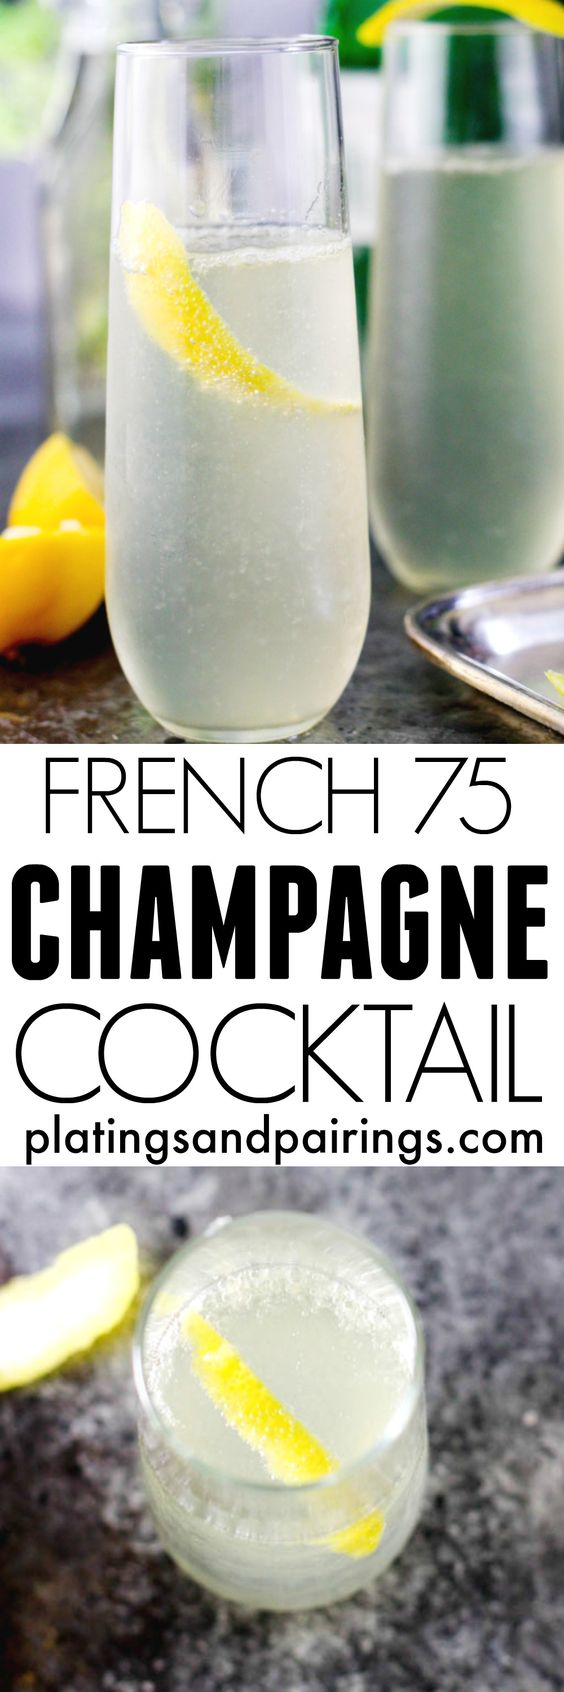 French 75, Champagne cocktail and Champagne on Pinterest